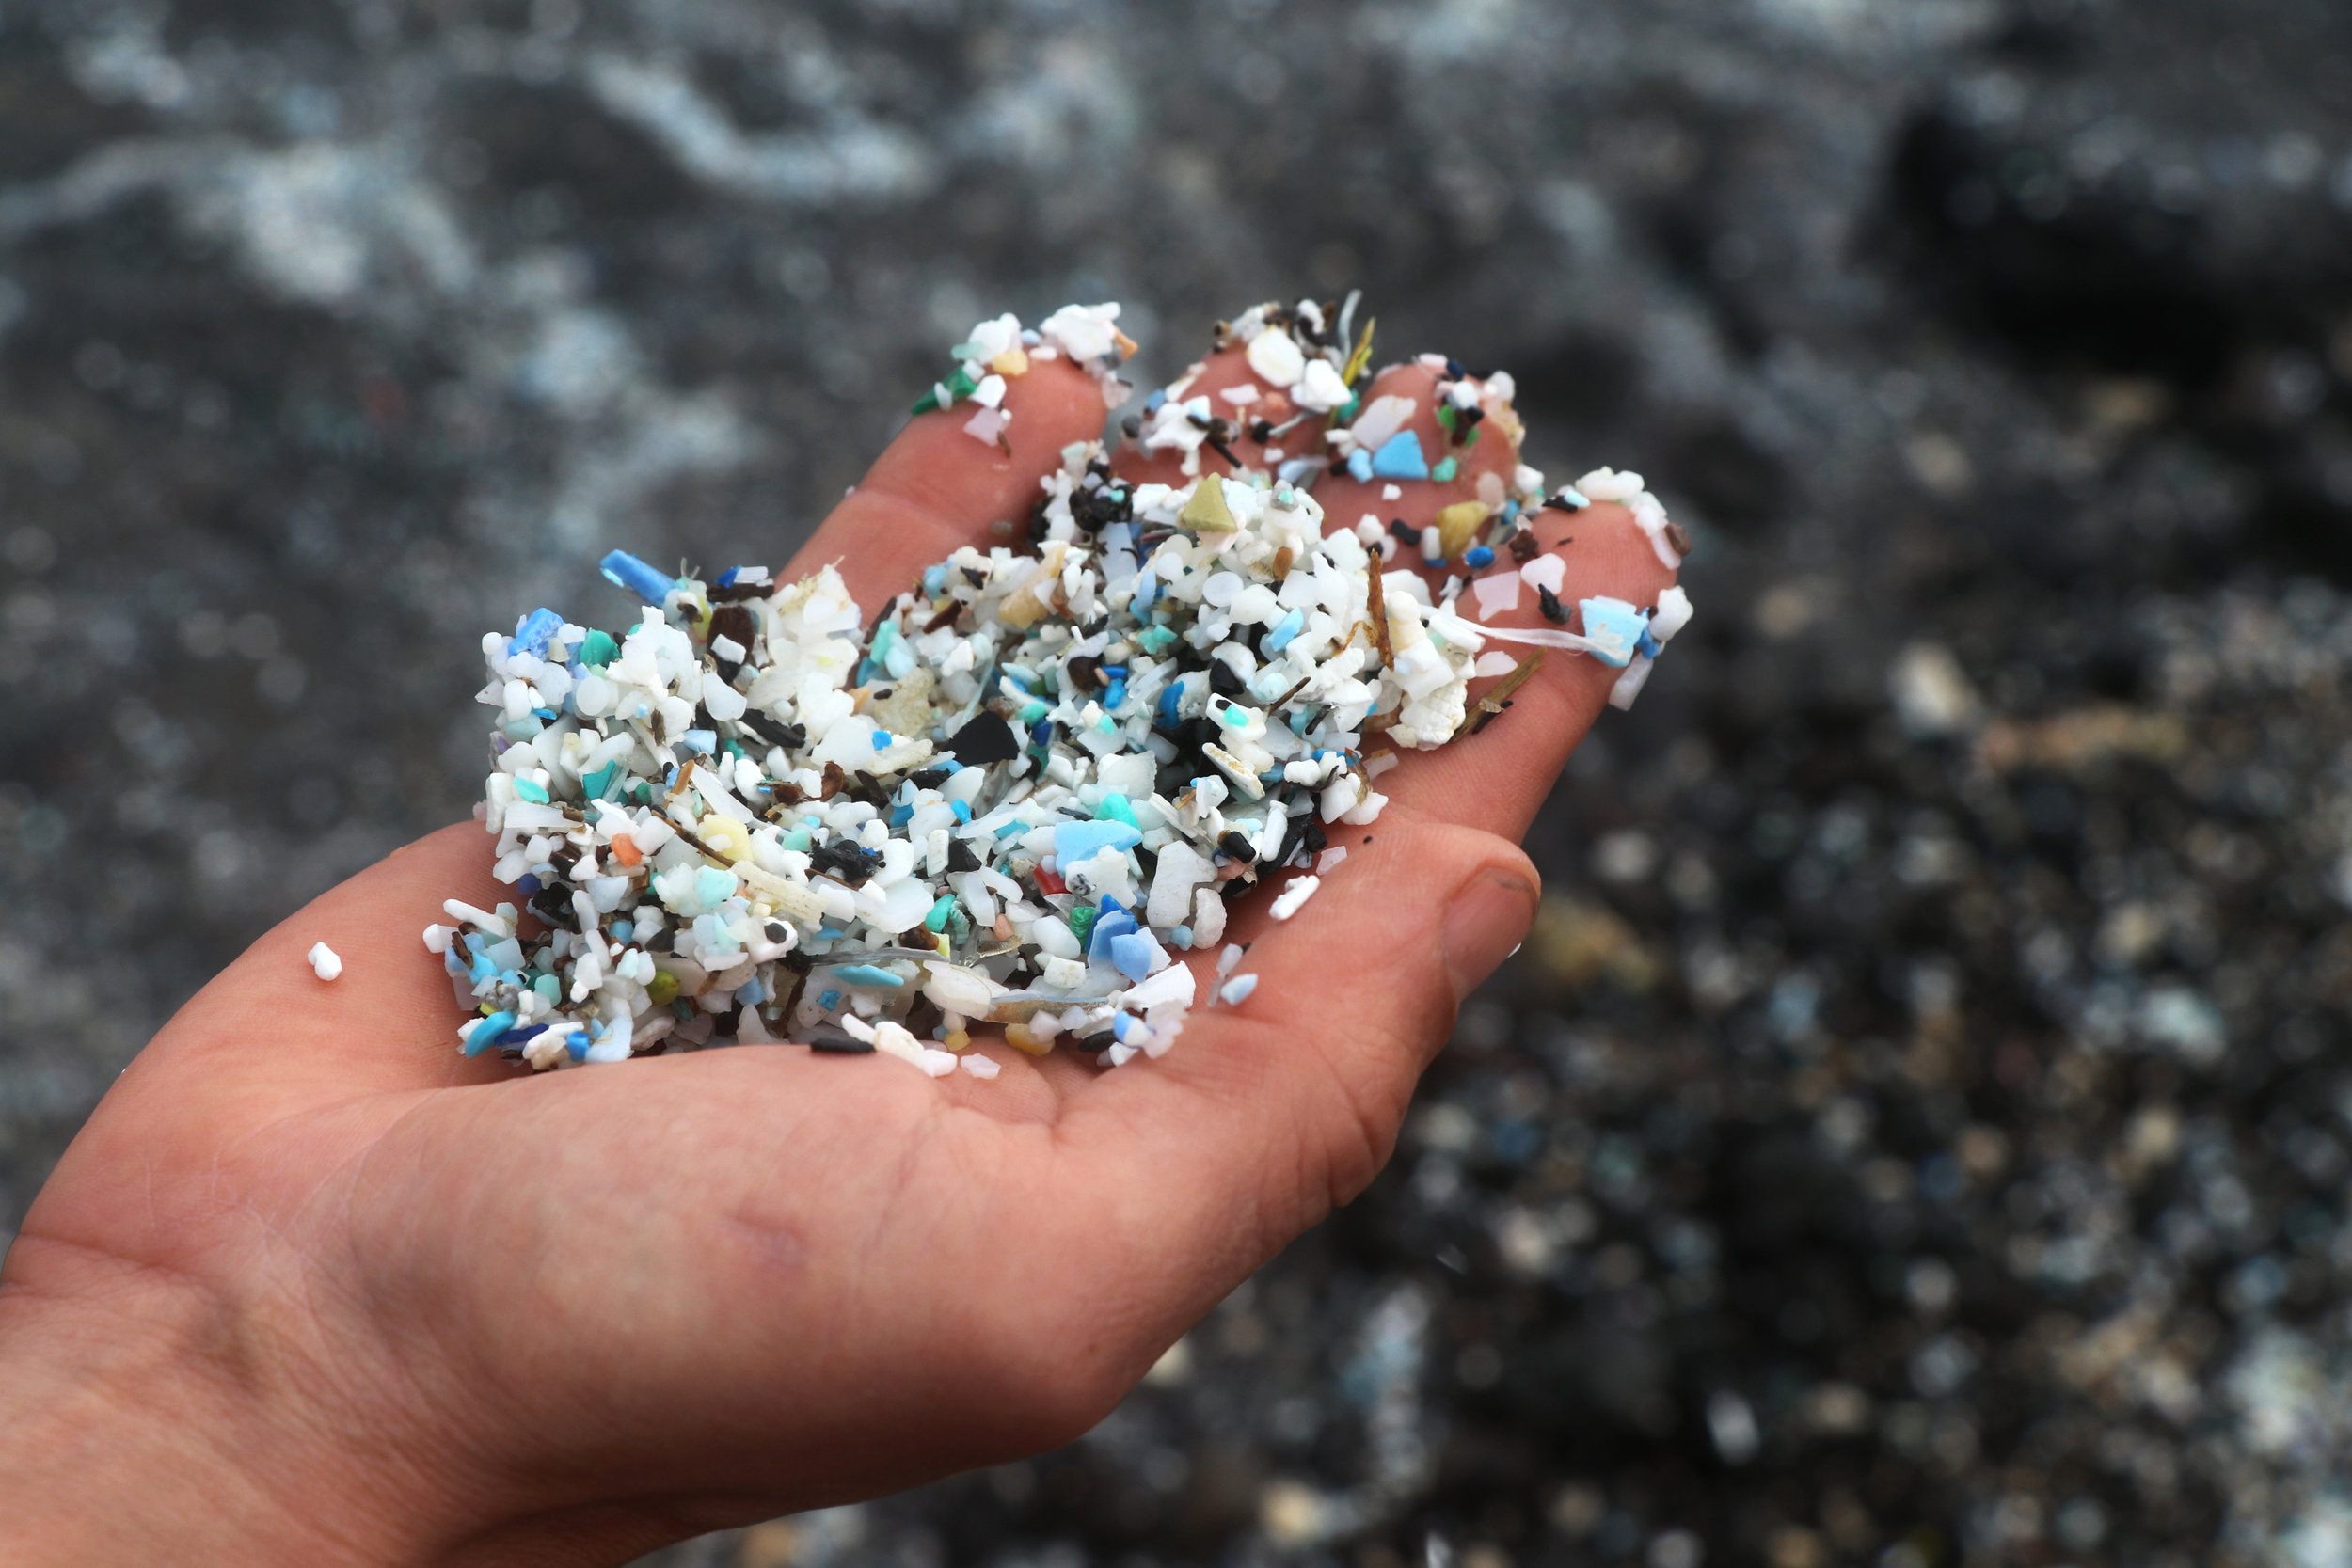 Photo: Microplastic scooped from water at Kamilo Beach, Hawaii, 2016. ©Erica Cirino